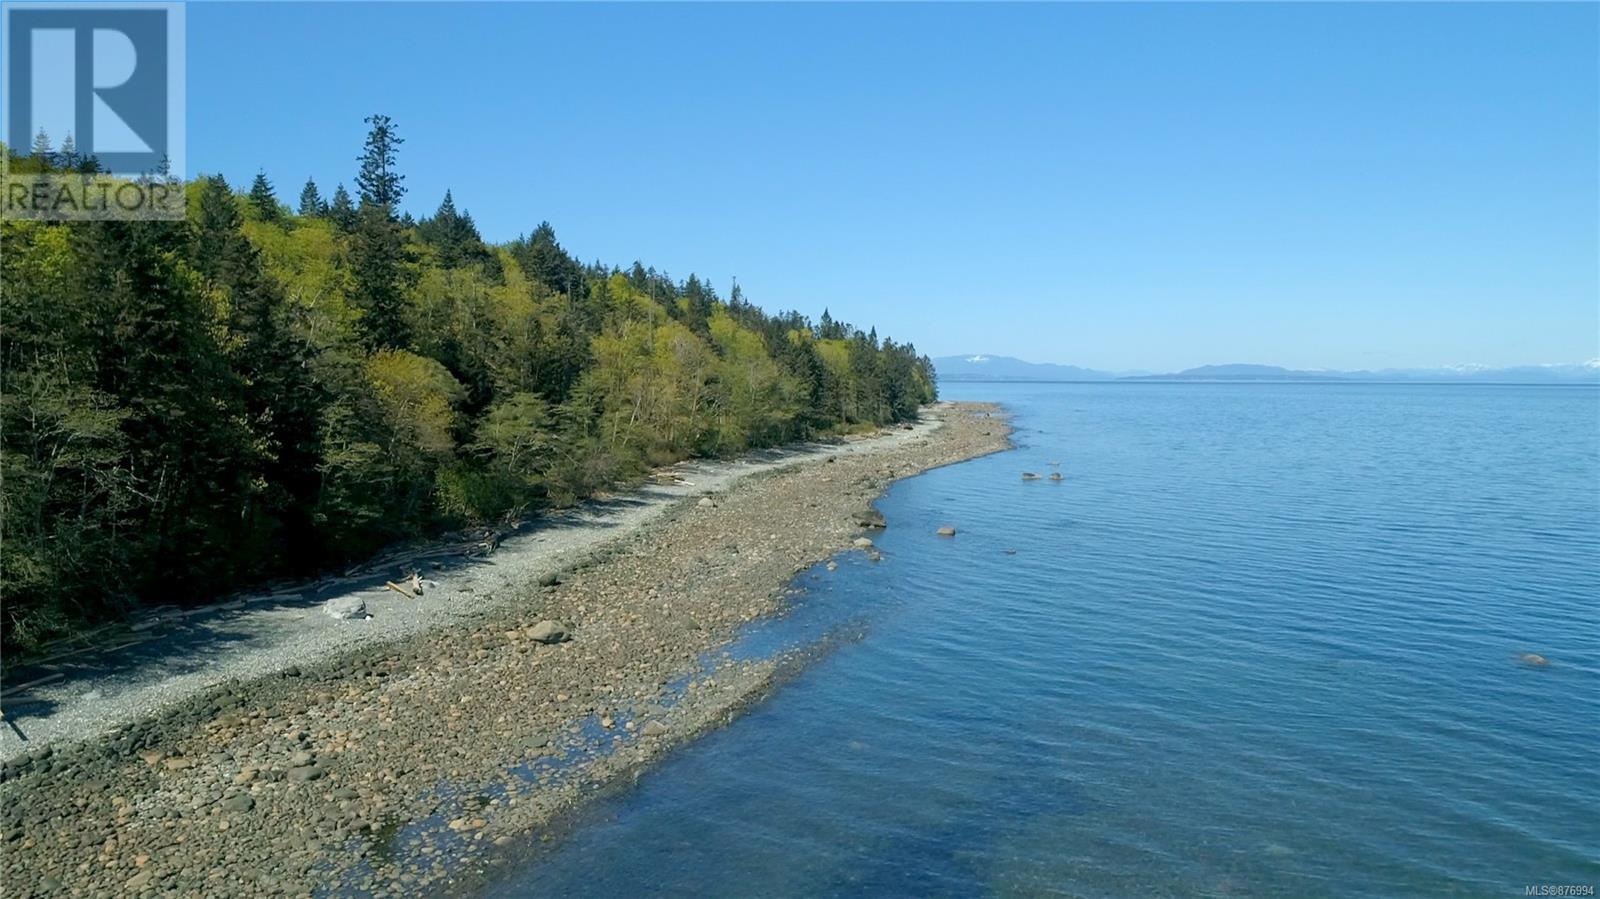 MLS® #876994 - Courtenay For sale Image #6